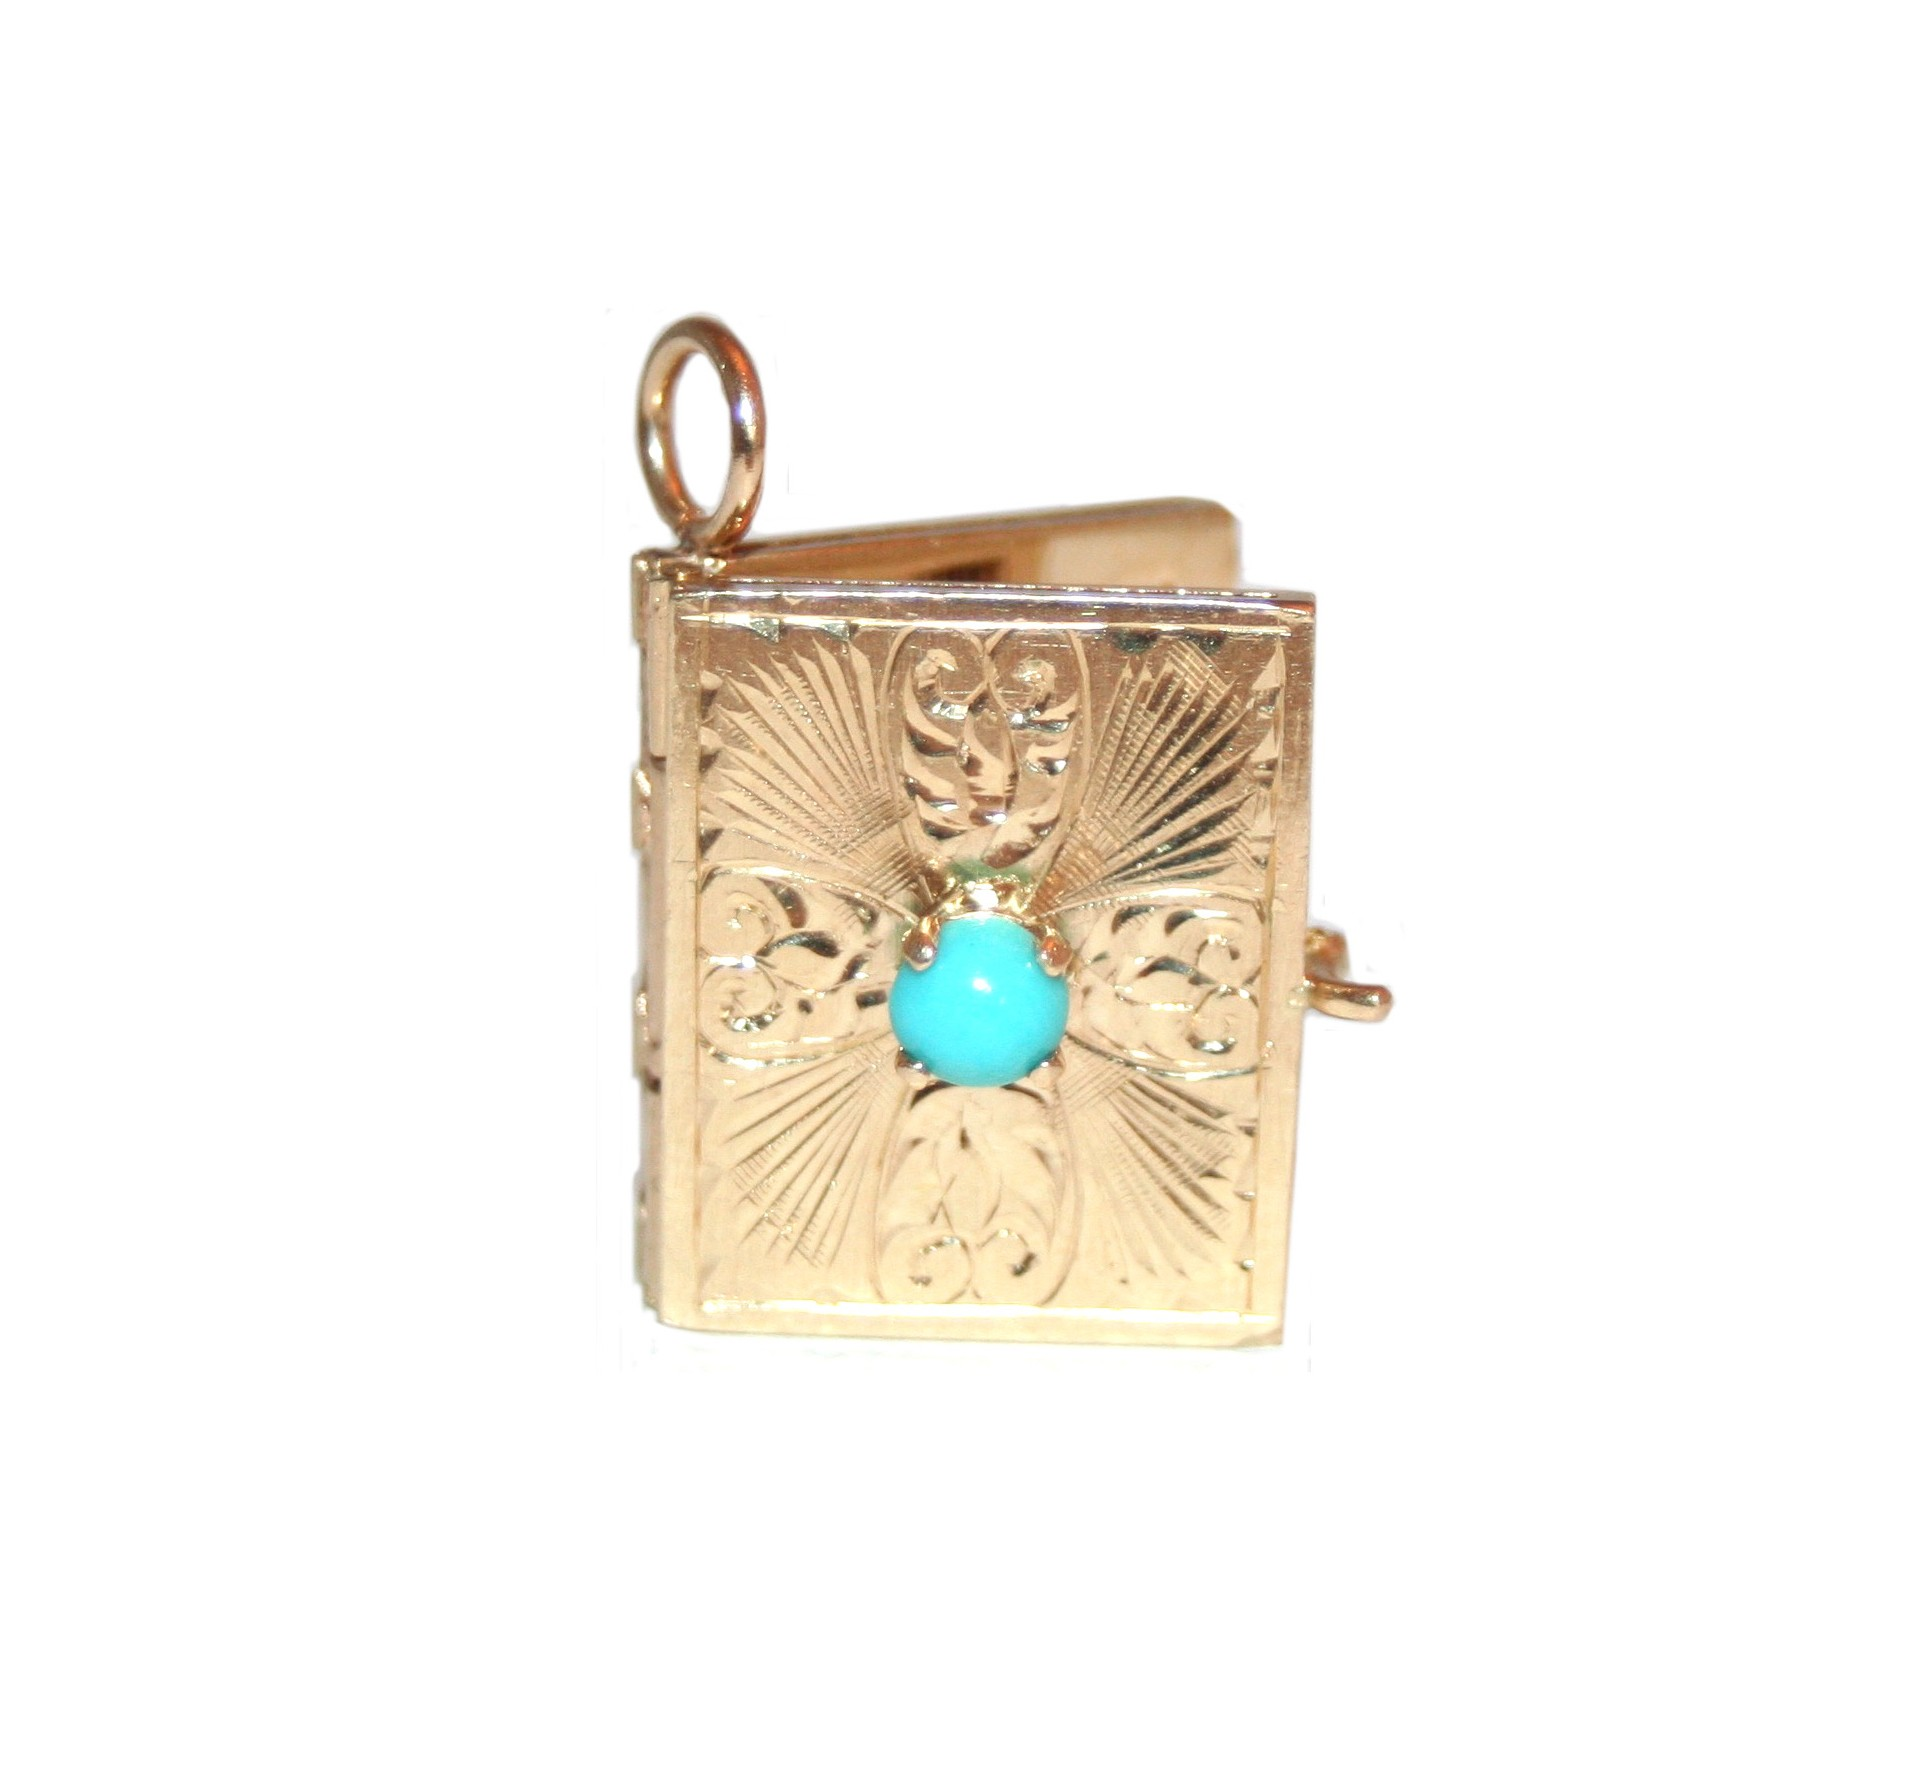 Estate turquoise book locket garland collection estate turquoise book locket aloadofball Gallery